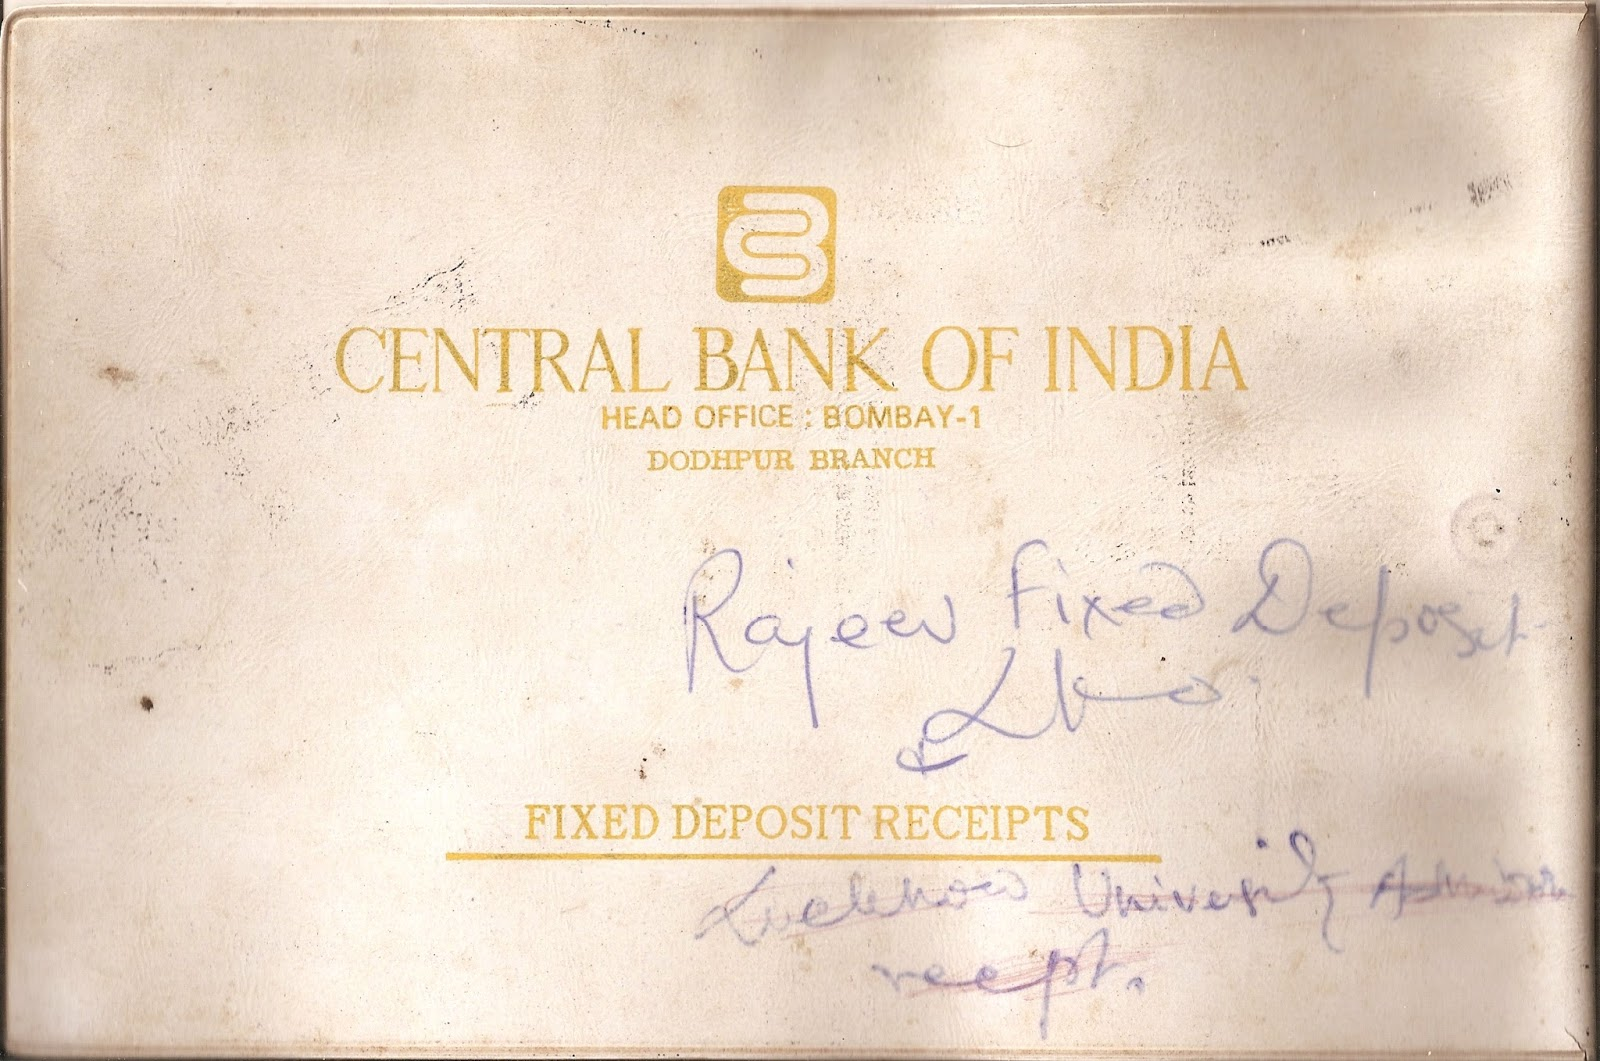 Coins and more 438 central bank of india a commemorative stamp i have kept the cover for my first fixed deposit receipt with the dodhpur branch aligarh of central bank of india as a souvenir on which my mother has thecheapjerseys Choice Image